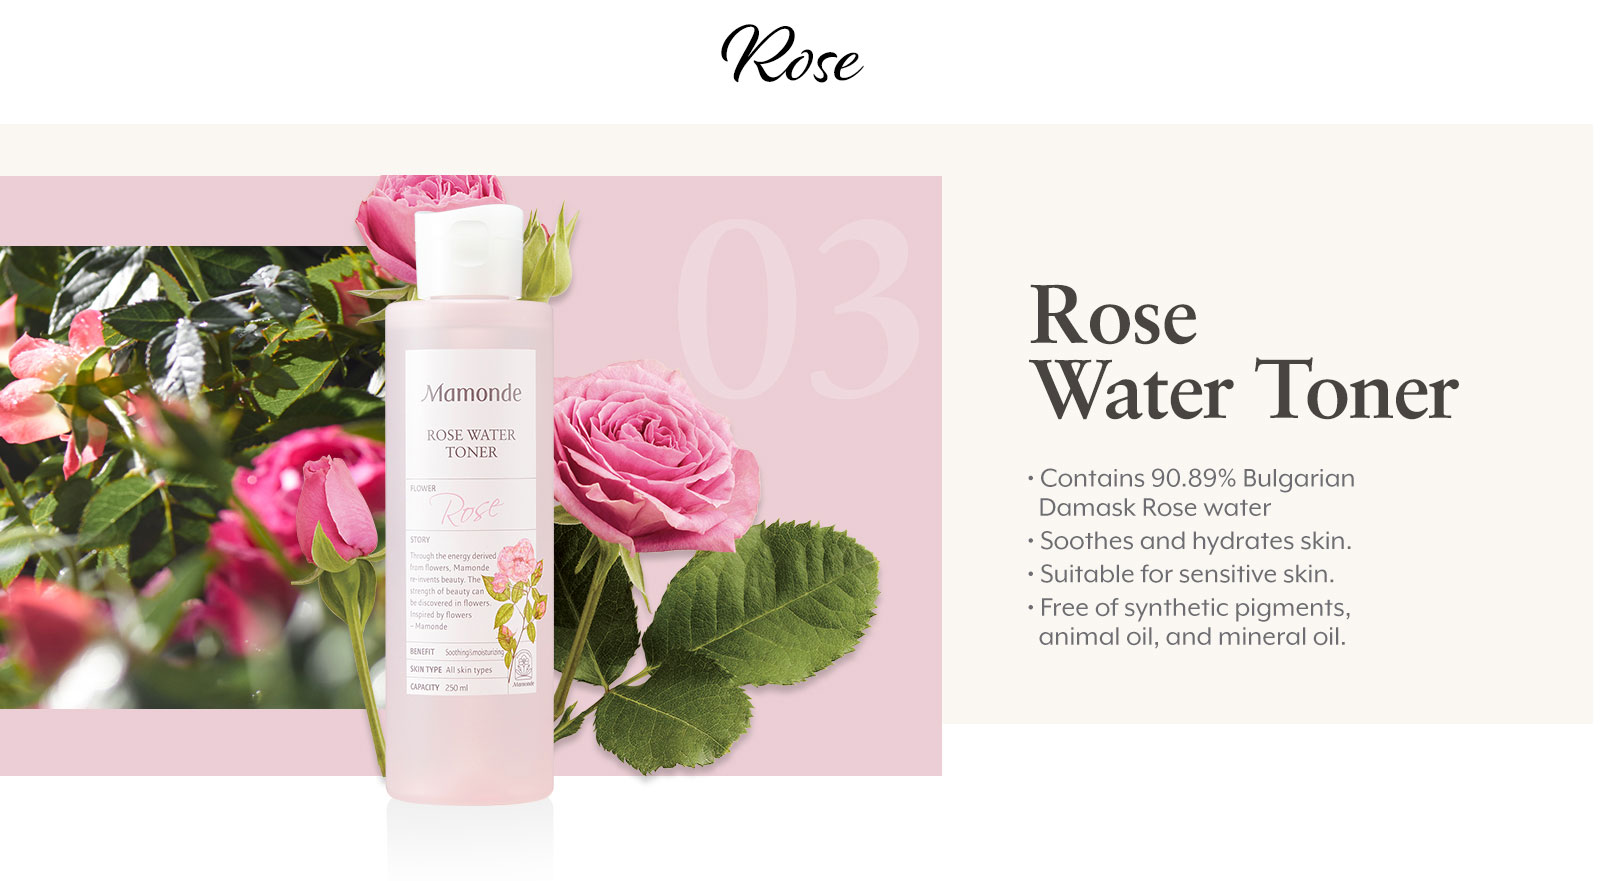 Mamonde Flagship Rose